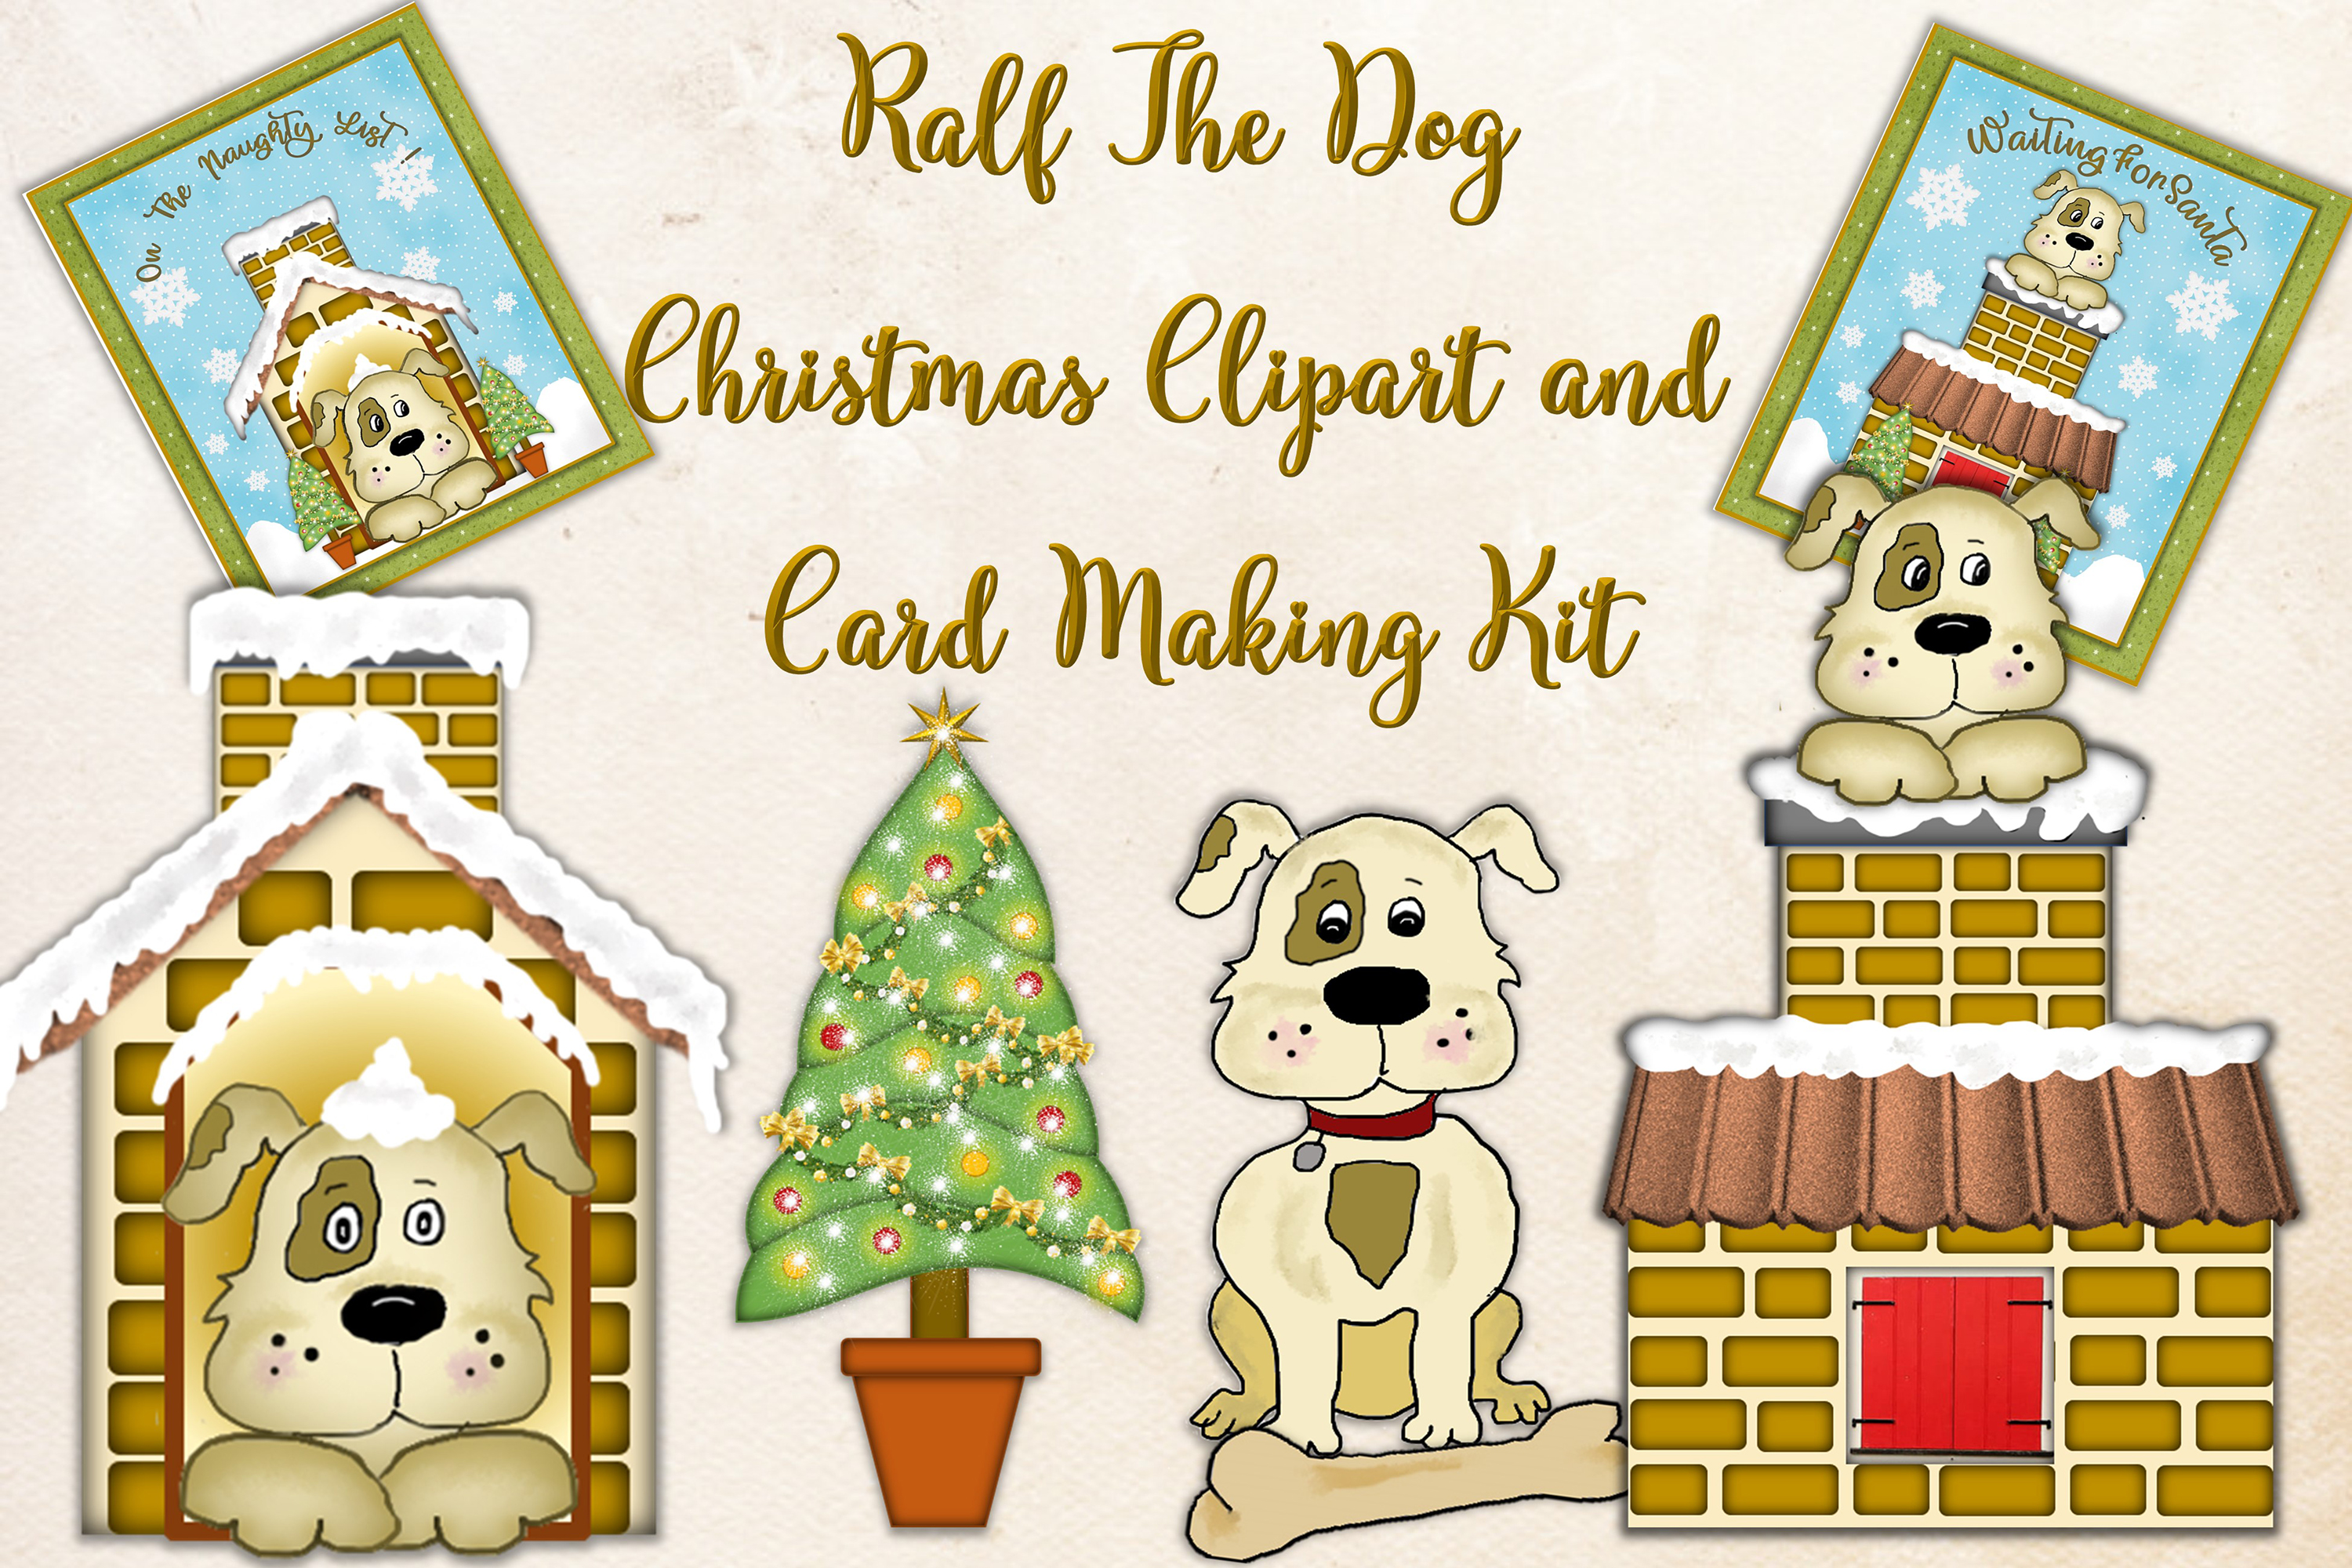 Cute Dog clipart and Christmas Card making Kit.